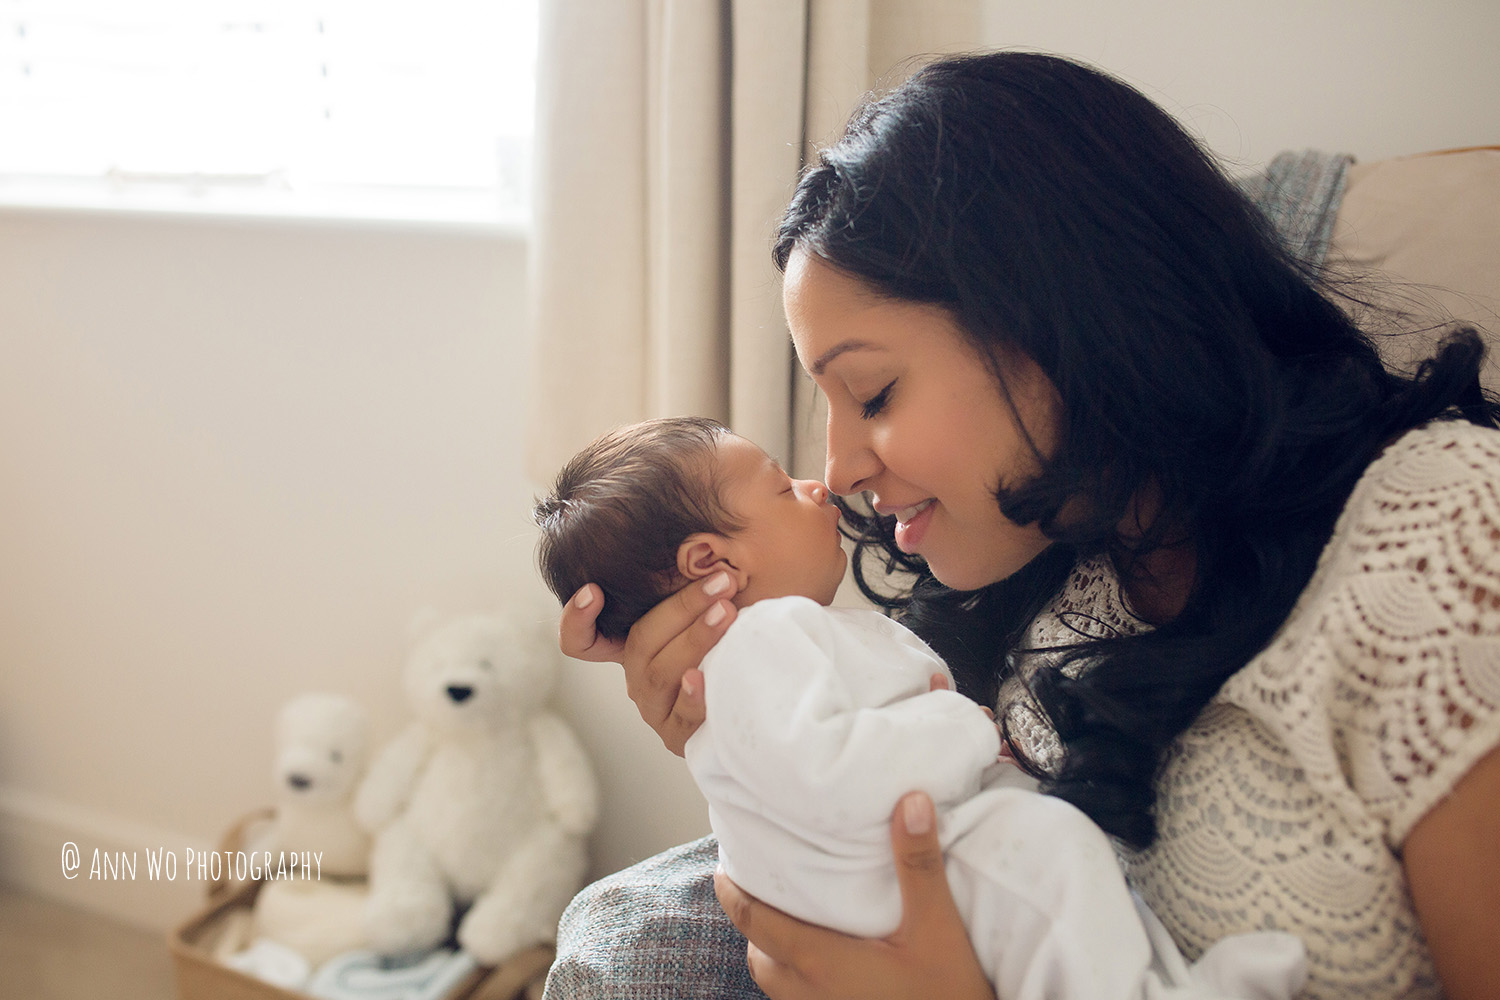 087-newborn-photography-at-home-ann-wo-london-53.JPG